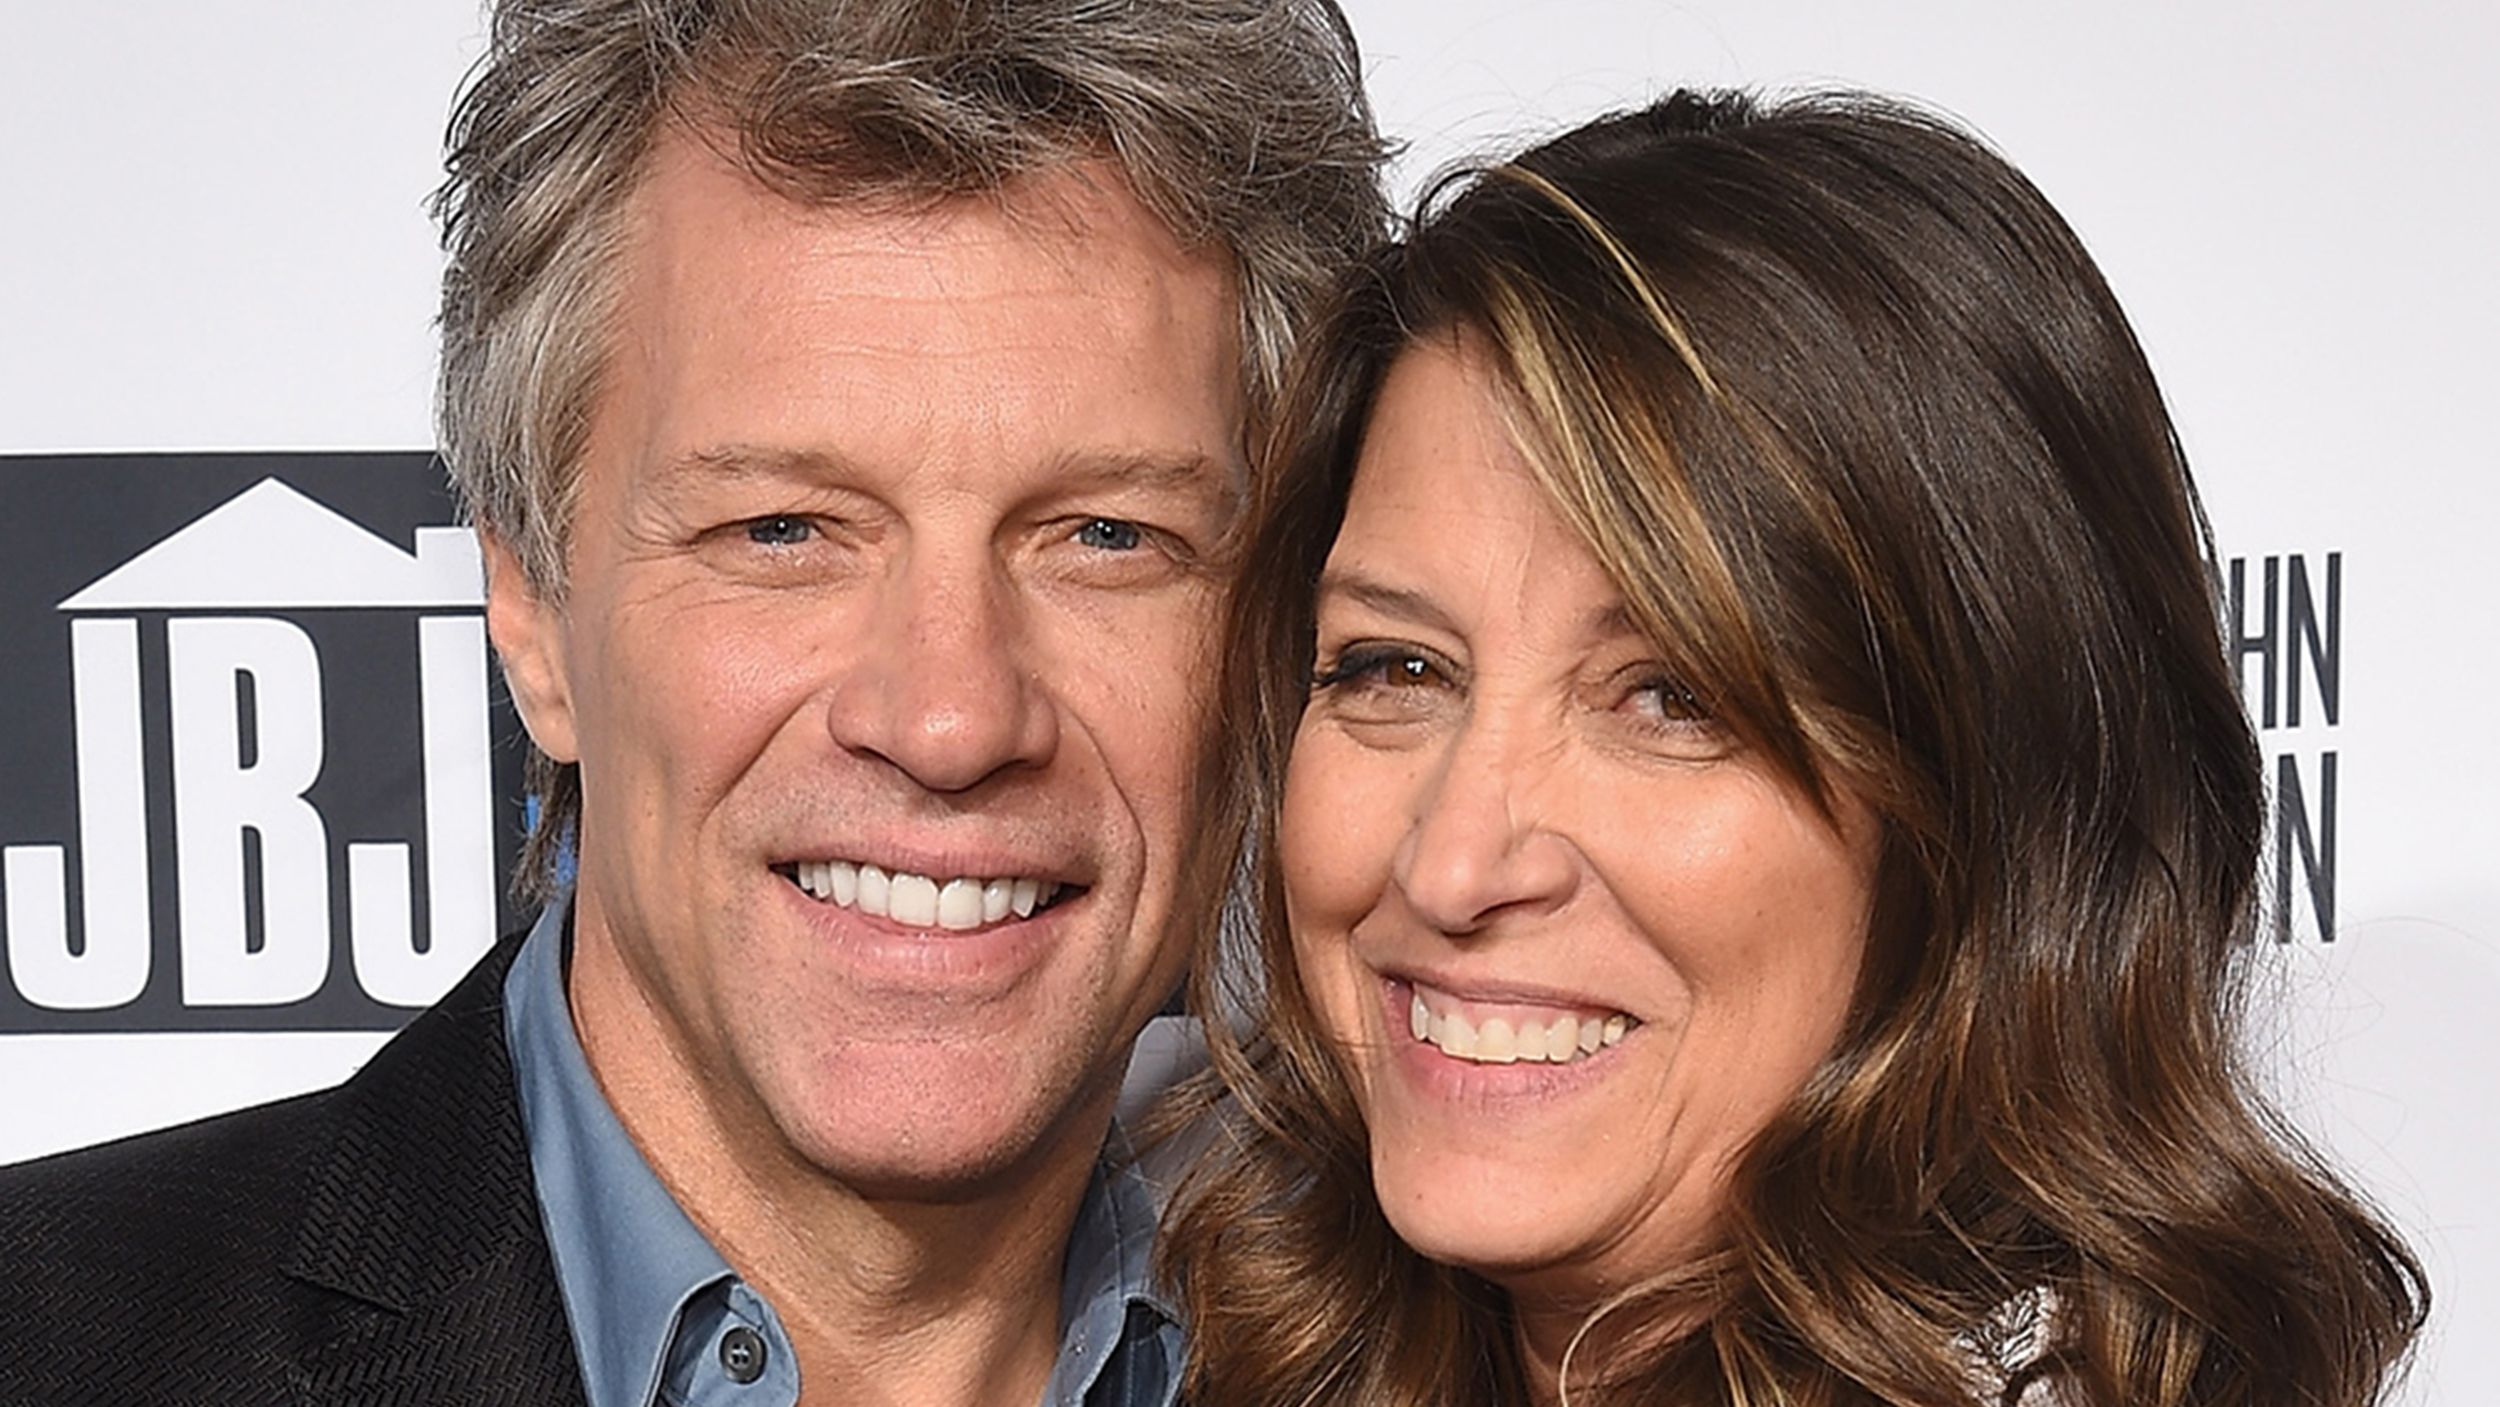 Jon Bon Jovi and wife reveal why their 27year marriage